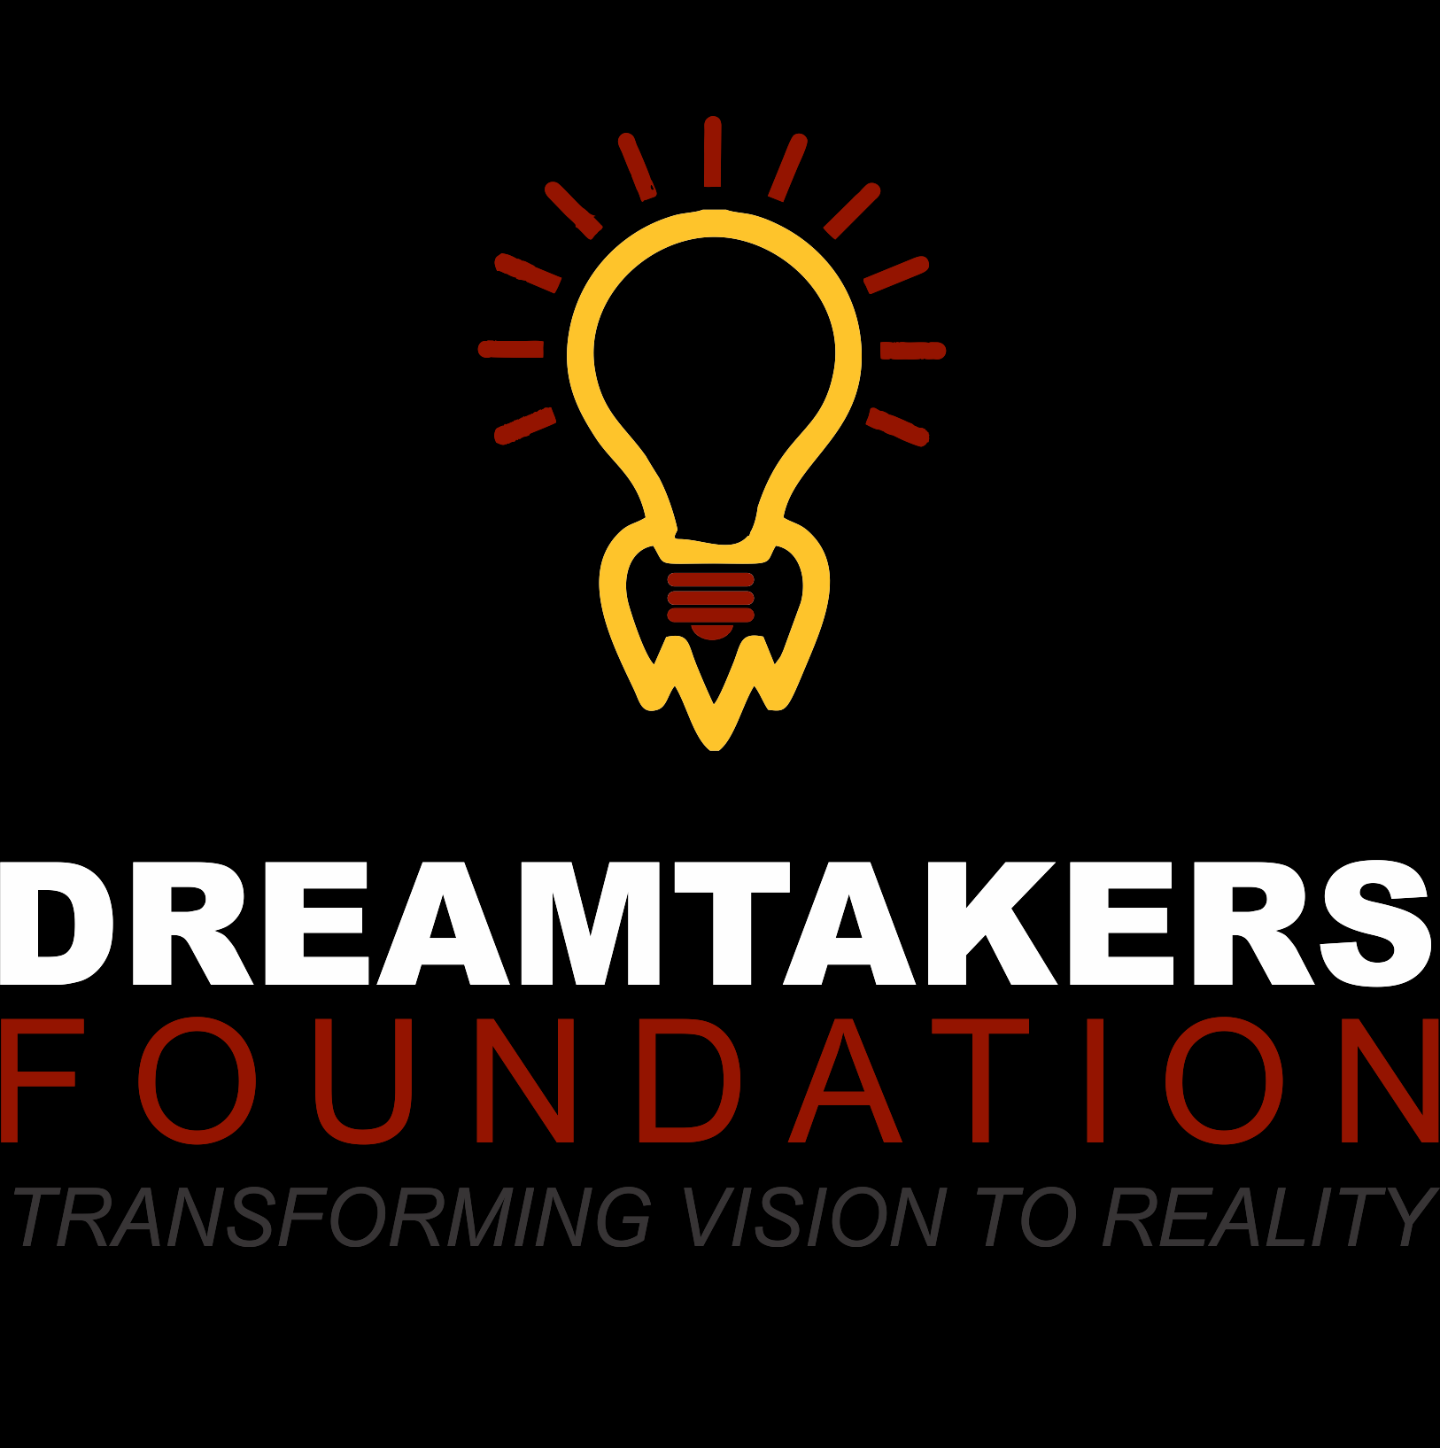 Dreamtakers Foundation